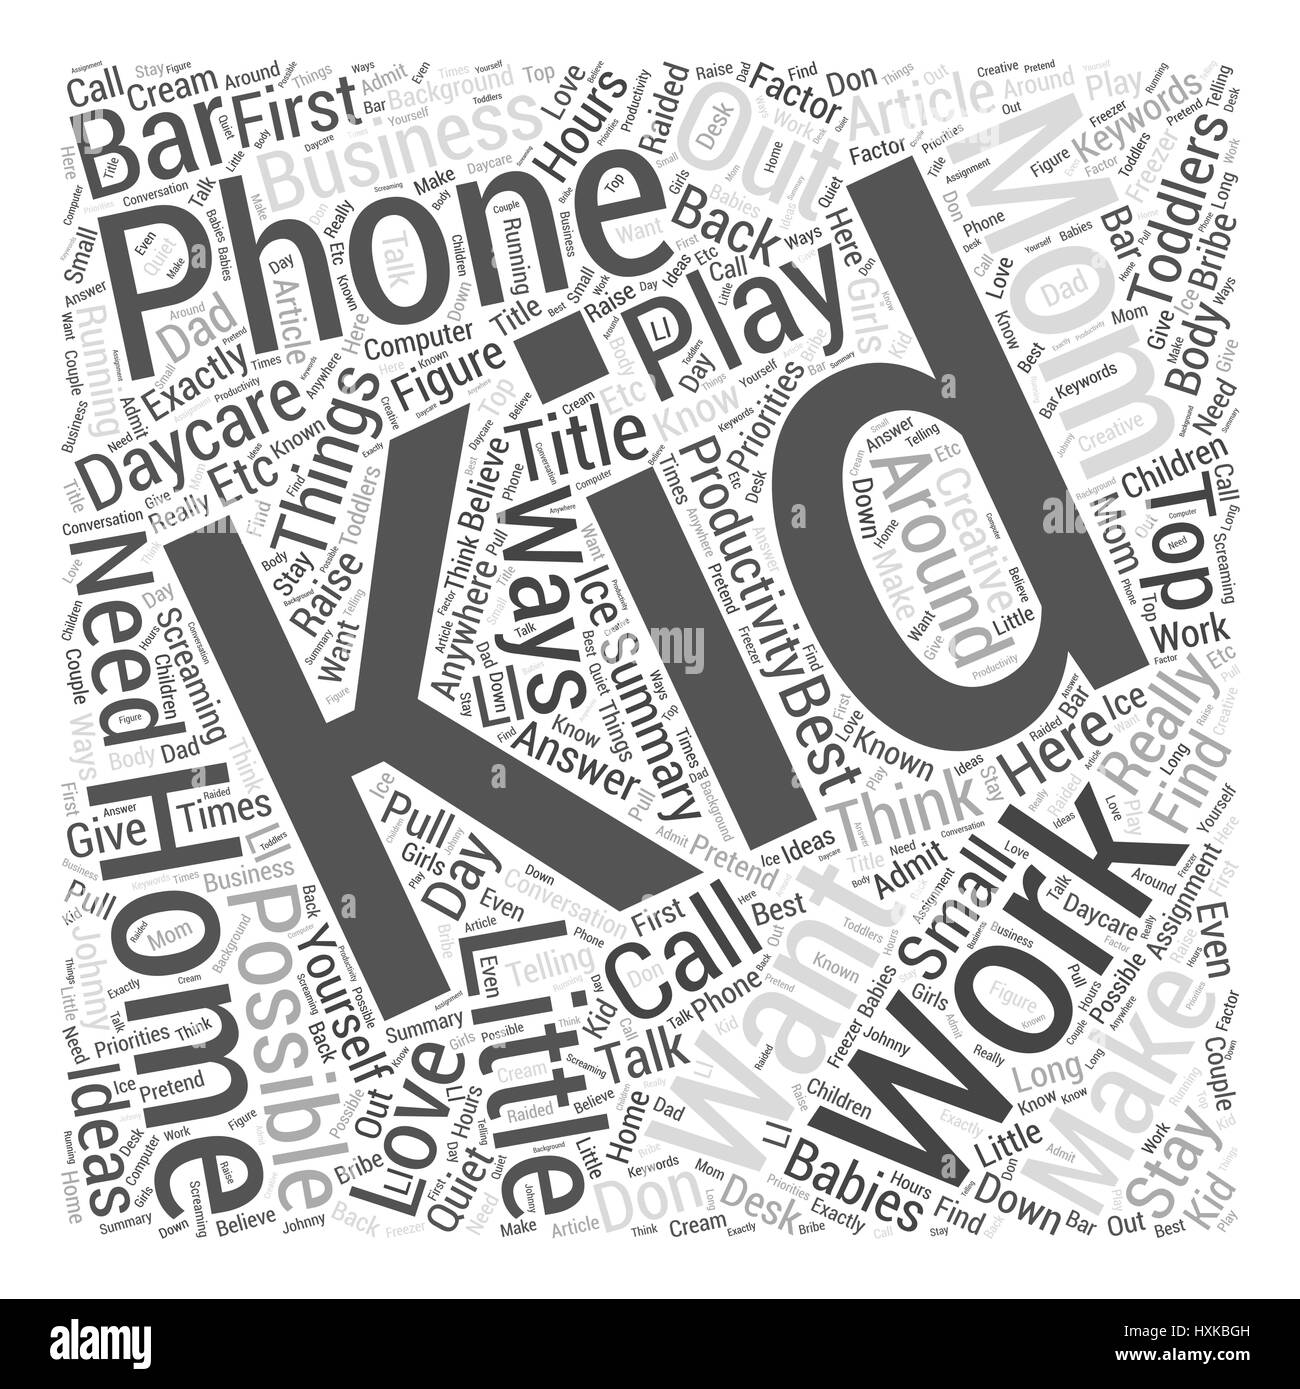 toddlers and productivity top ways to make it work word cloud stock